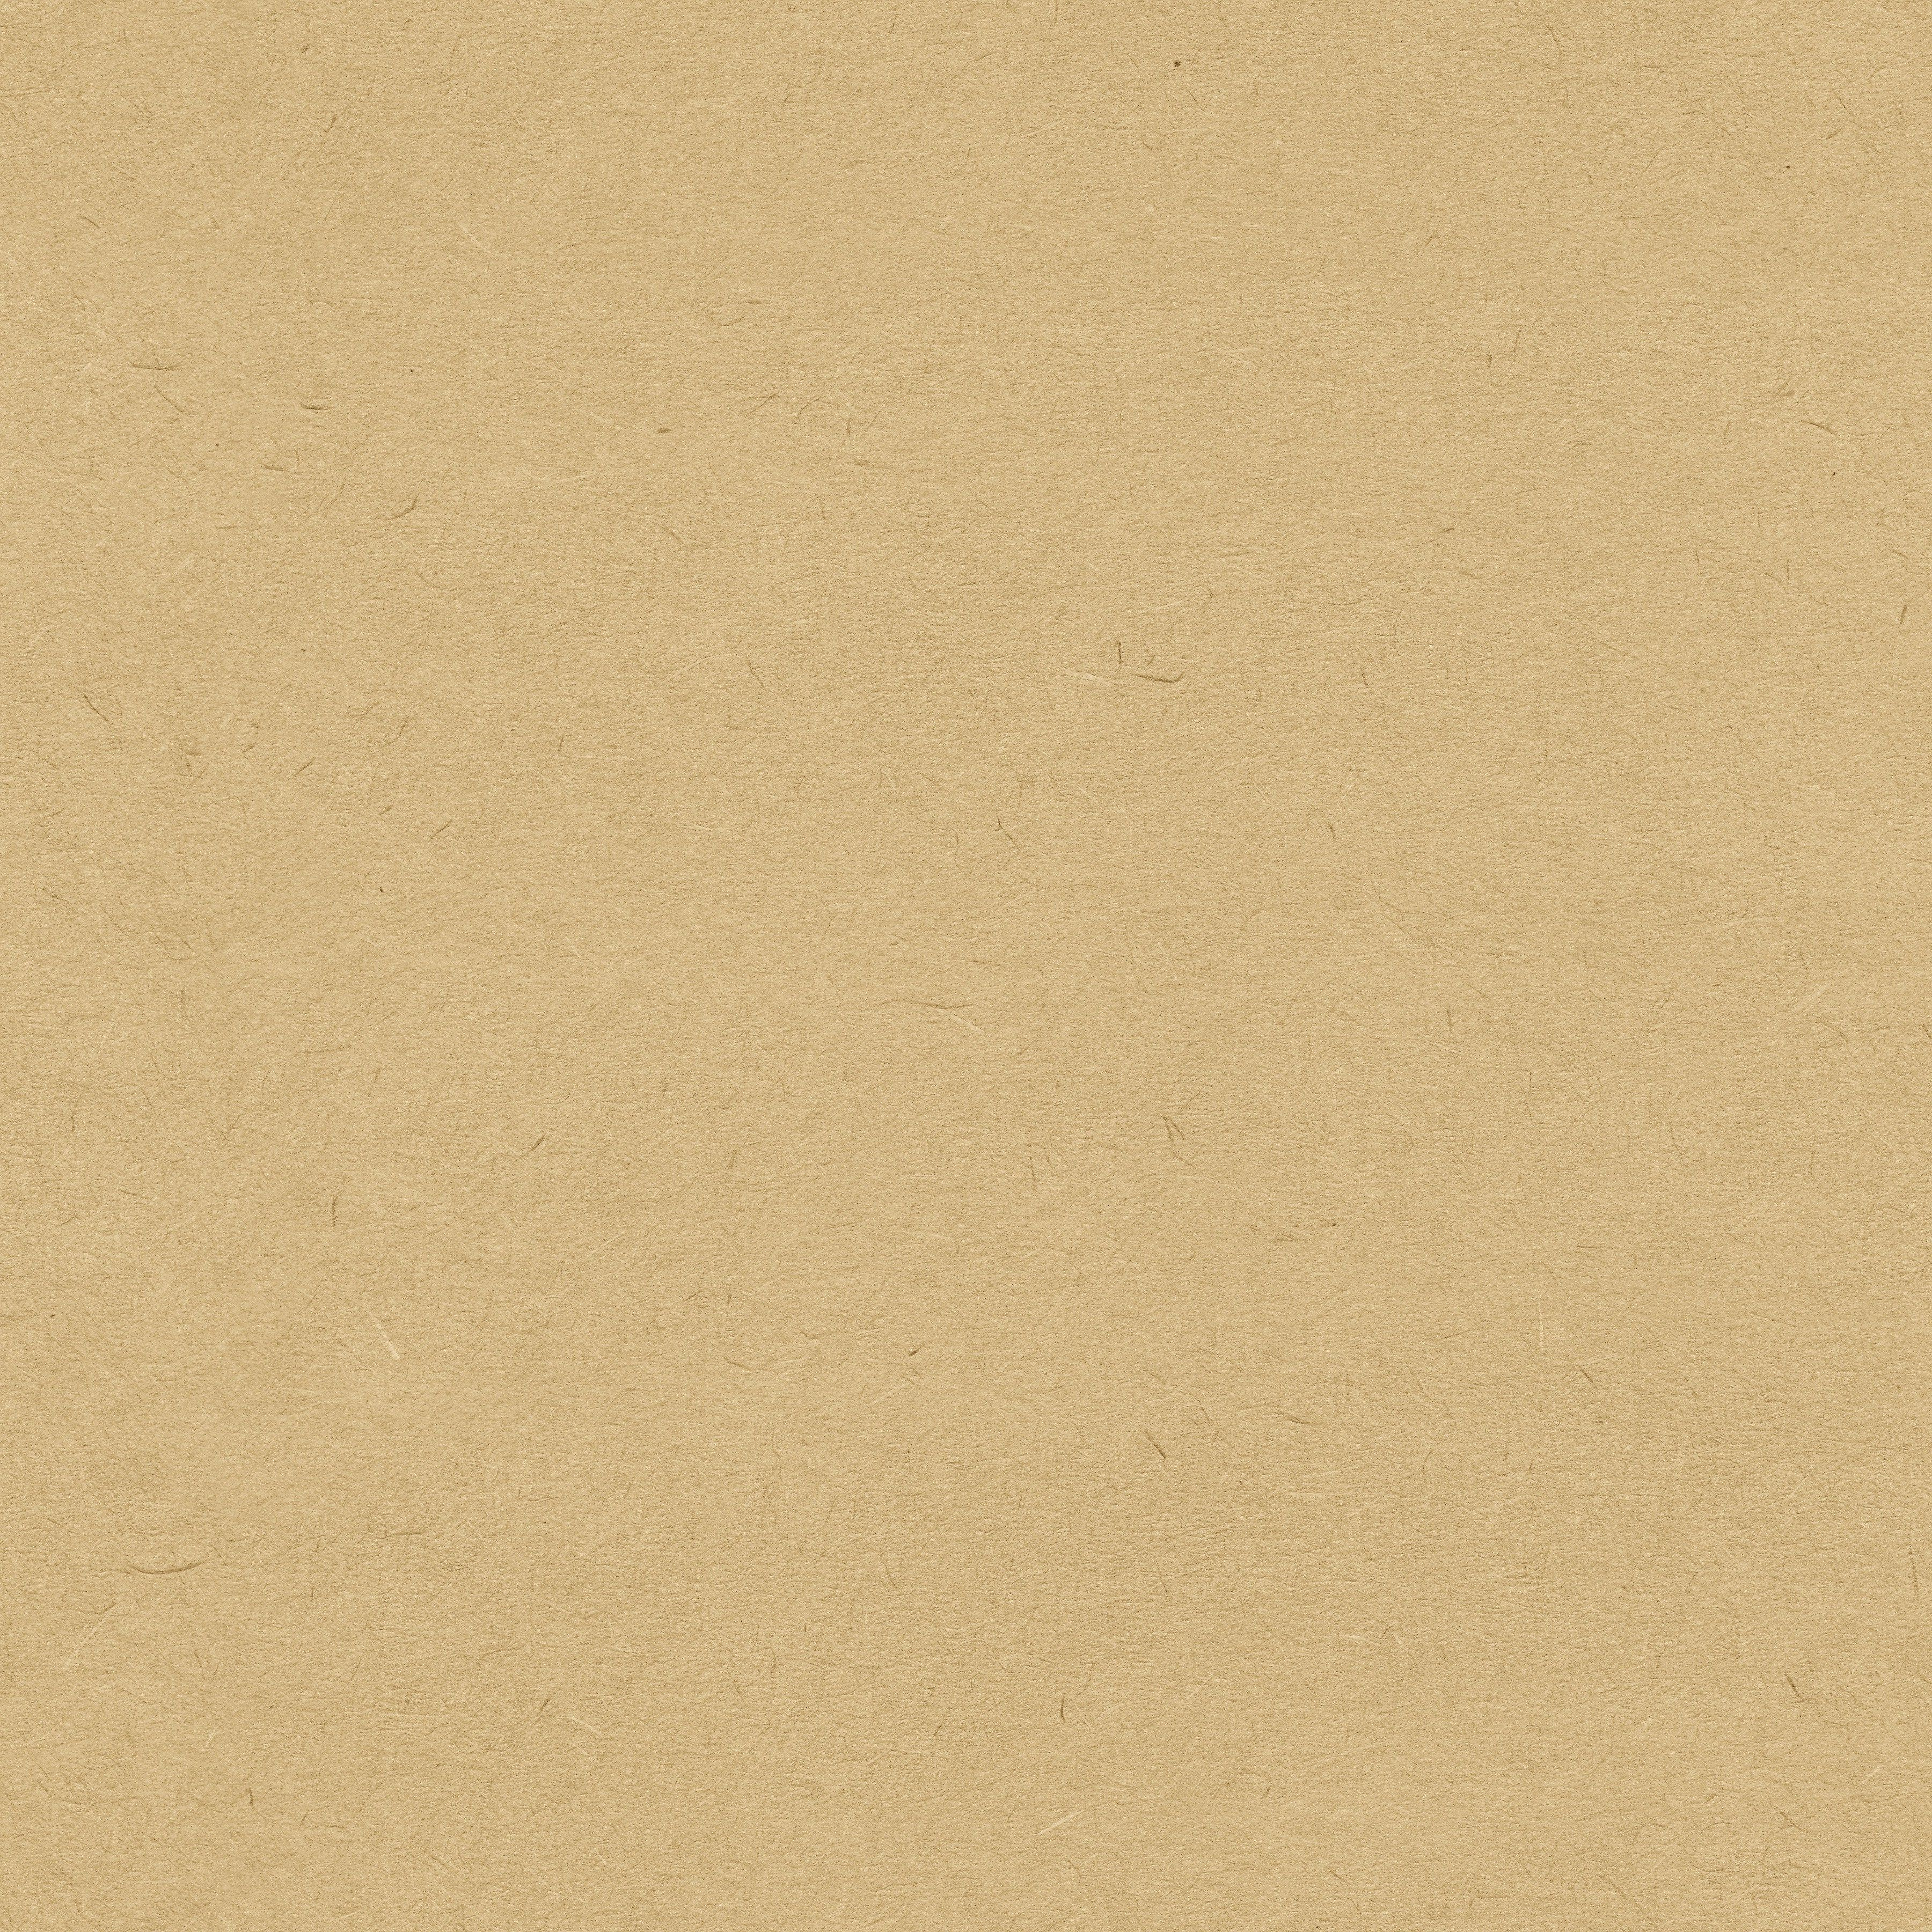 Free Brown Paper With Fibers Tiling Texture Free Tiling